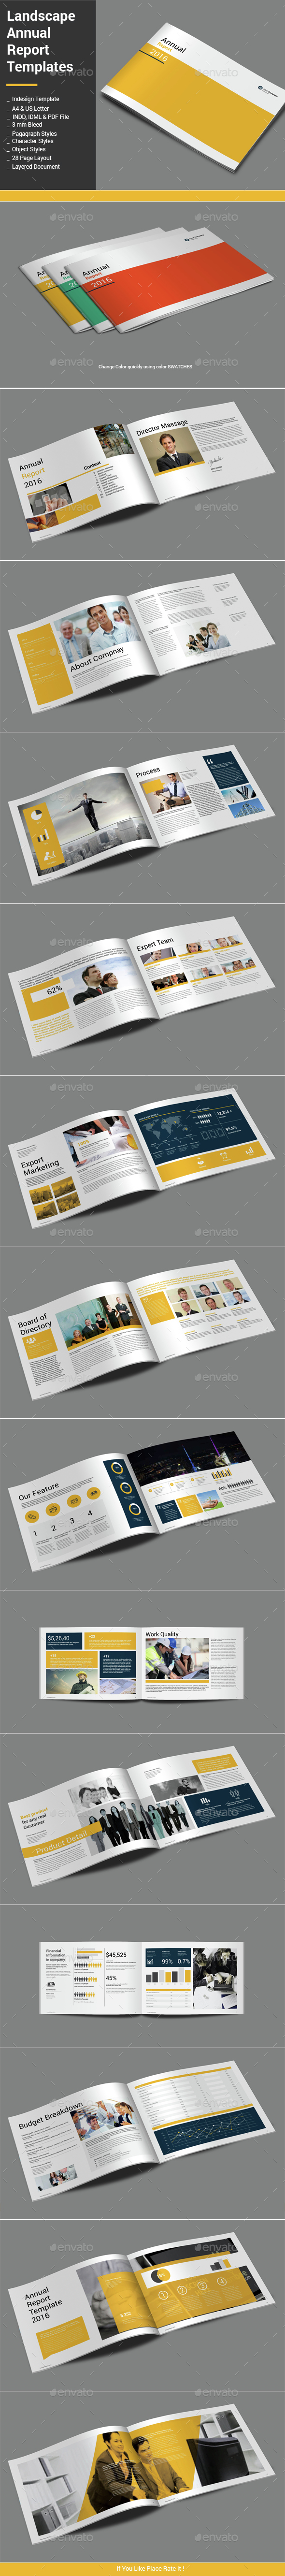 Landscape Annual Report Template - Informational Brochures